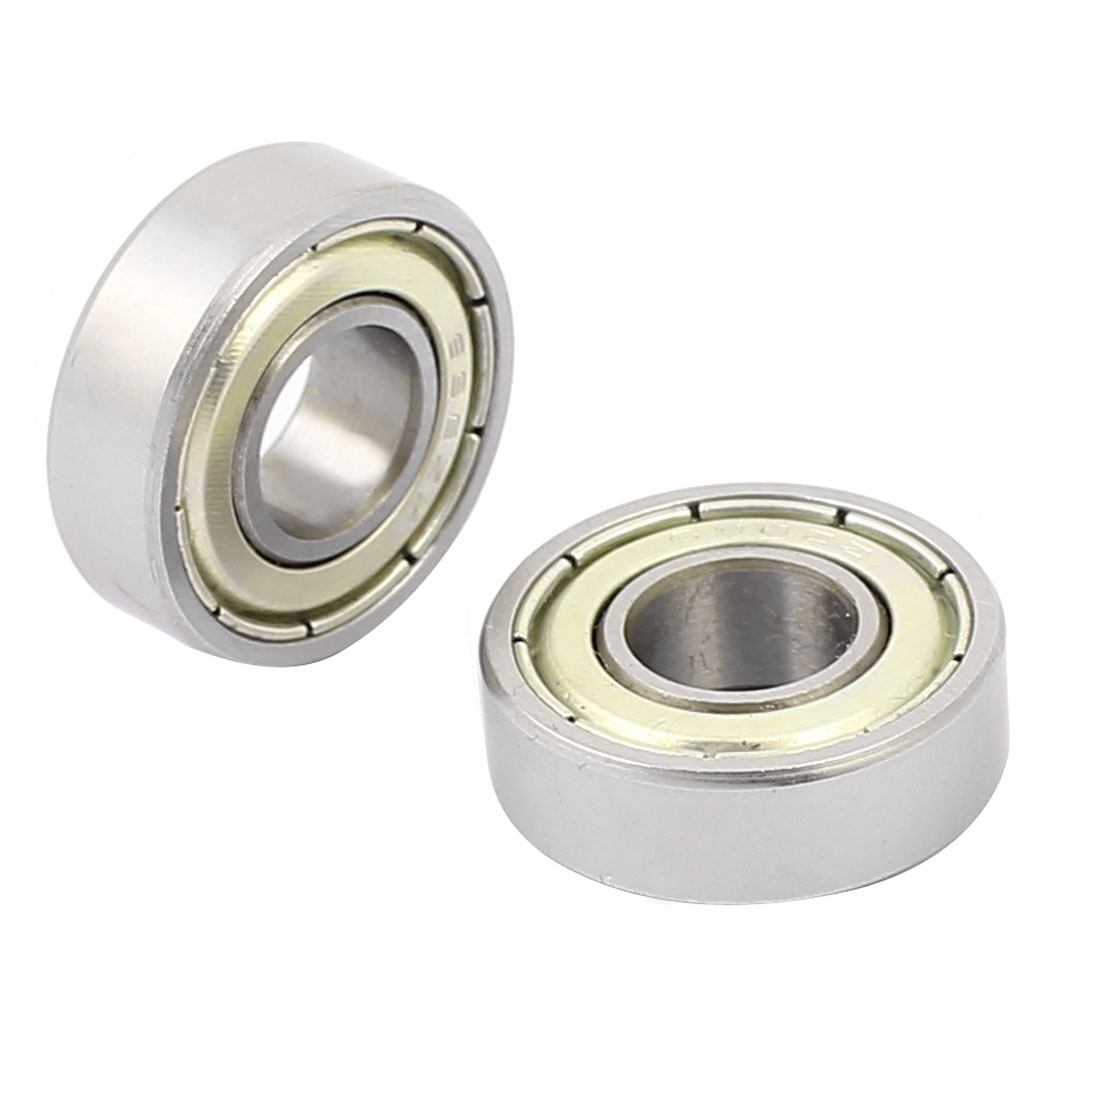 Metal Deep Groove Sealed Shielded Ball Bearing 8mmx19mmx6mm Silver Tone